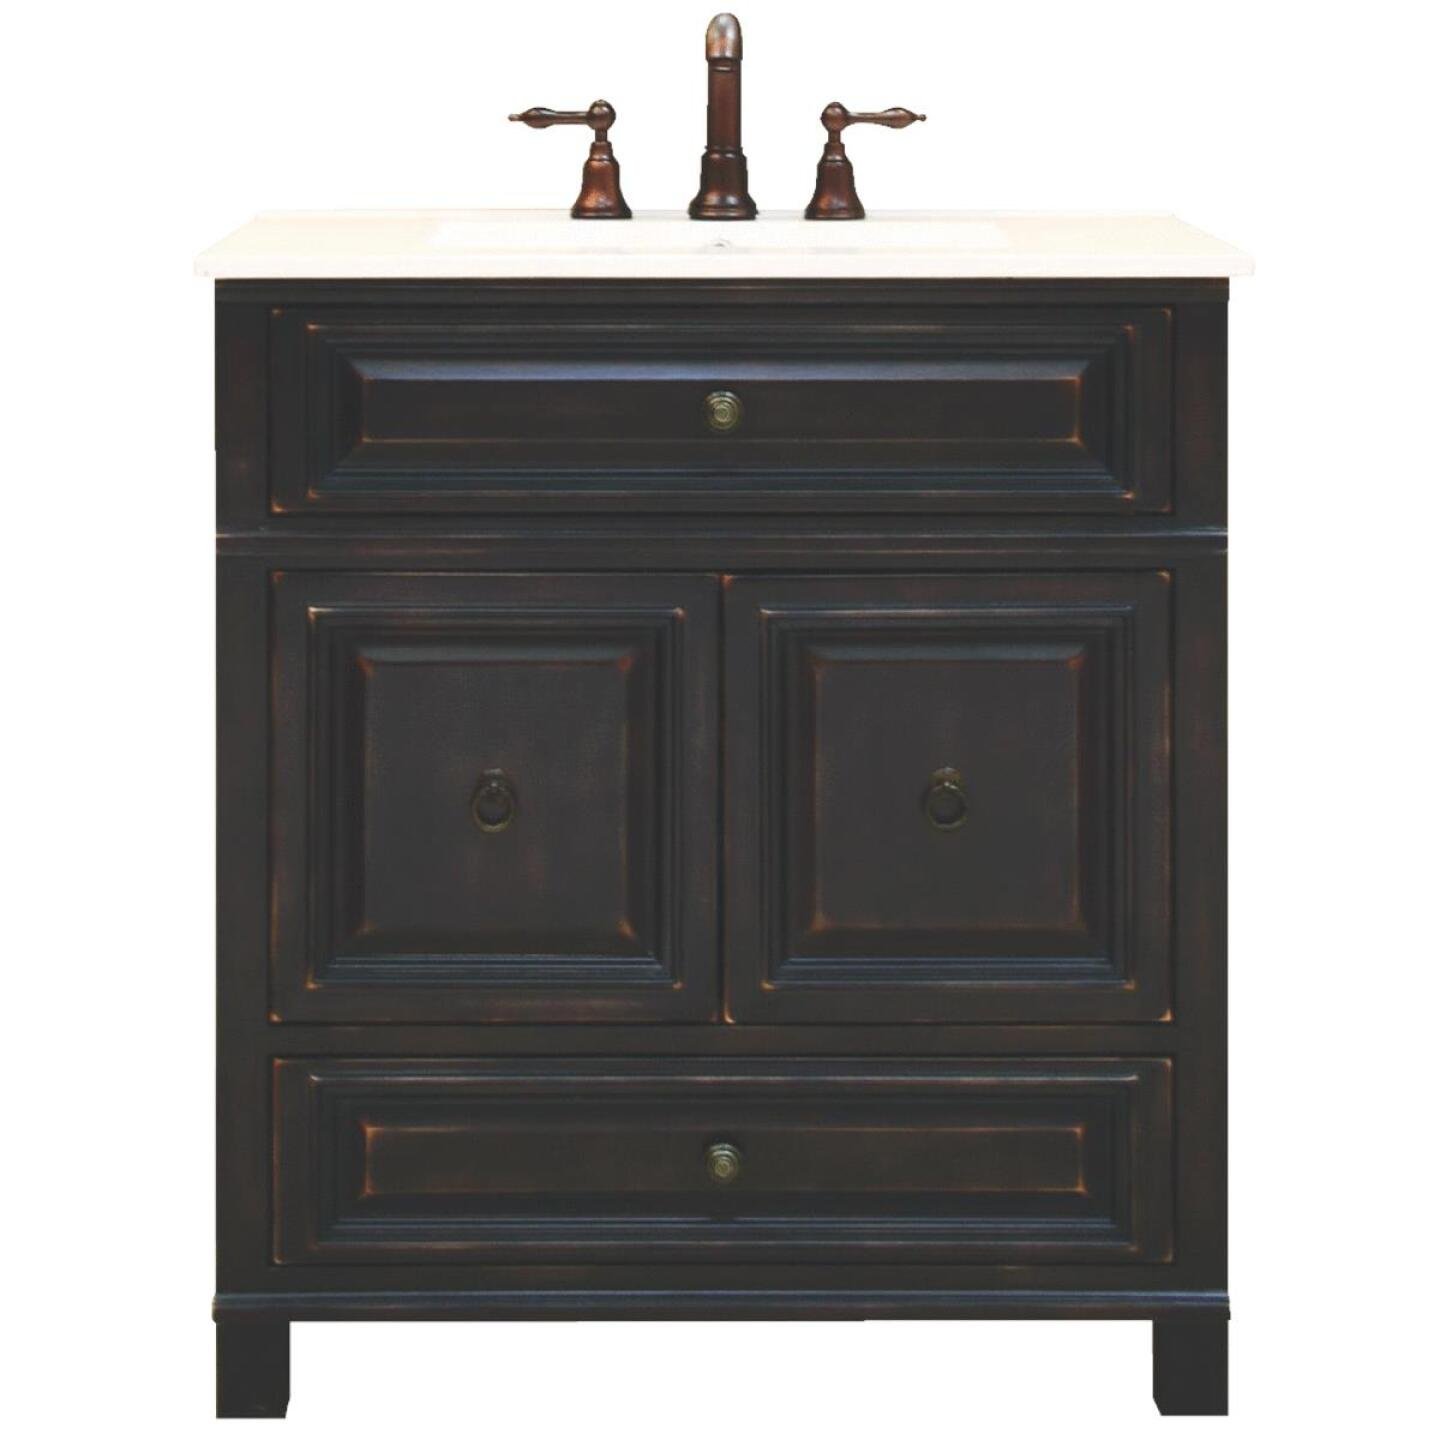 Sunny Wood Barton Hill Black Onyx 30 In. W x 34 In. H x 21 In. D Vanity Base, 2 Door/1 Drawer Image 44